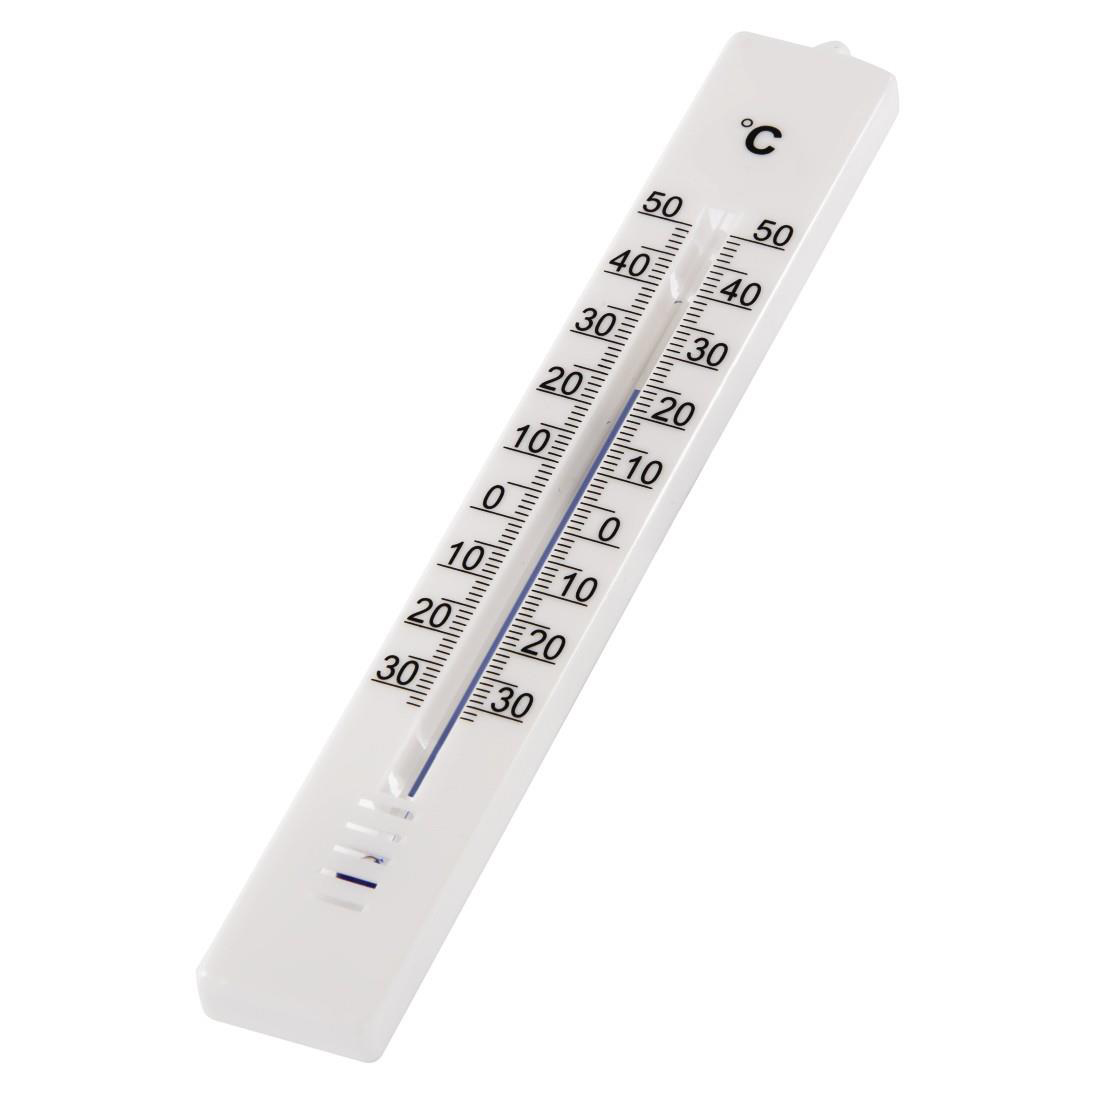 Hama Thermometer Indoor/Outdoor Use 18cm Ref 136282